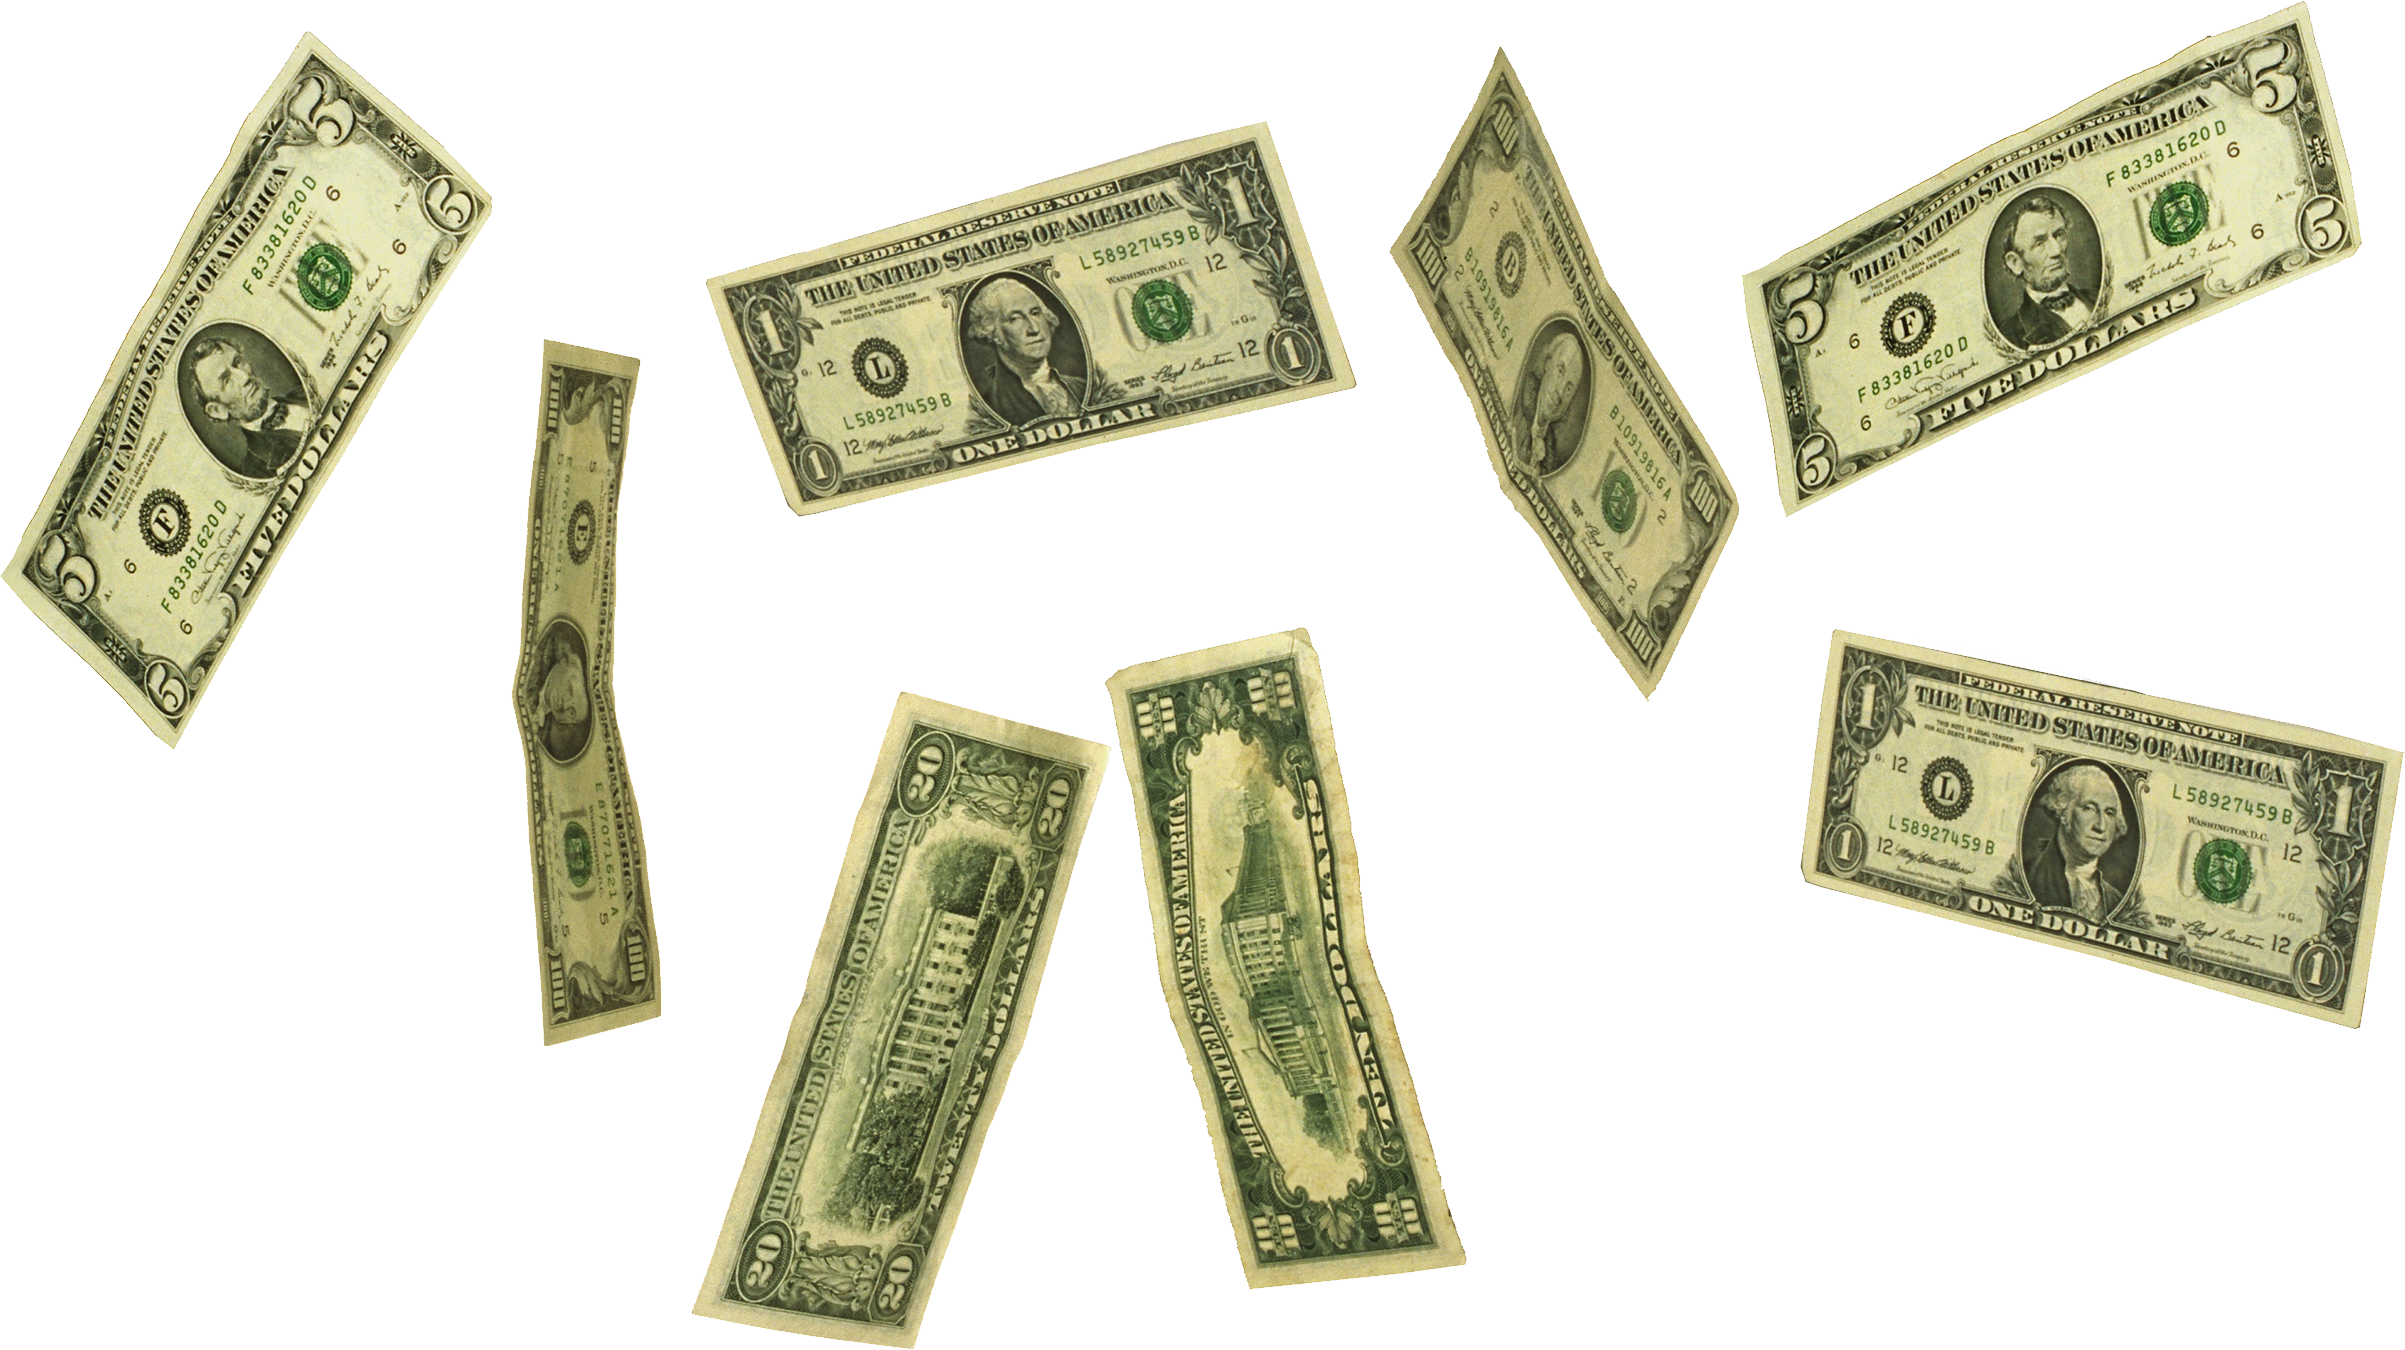 Falling cash png. Money image without background